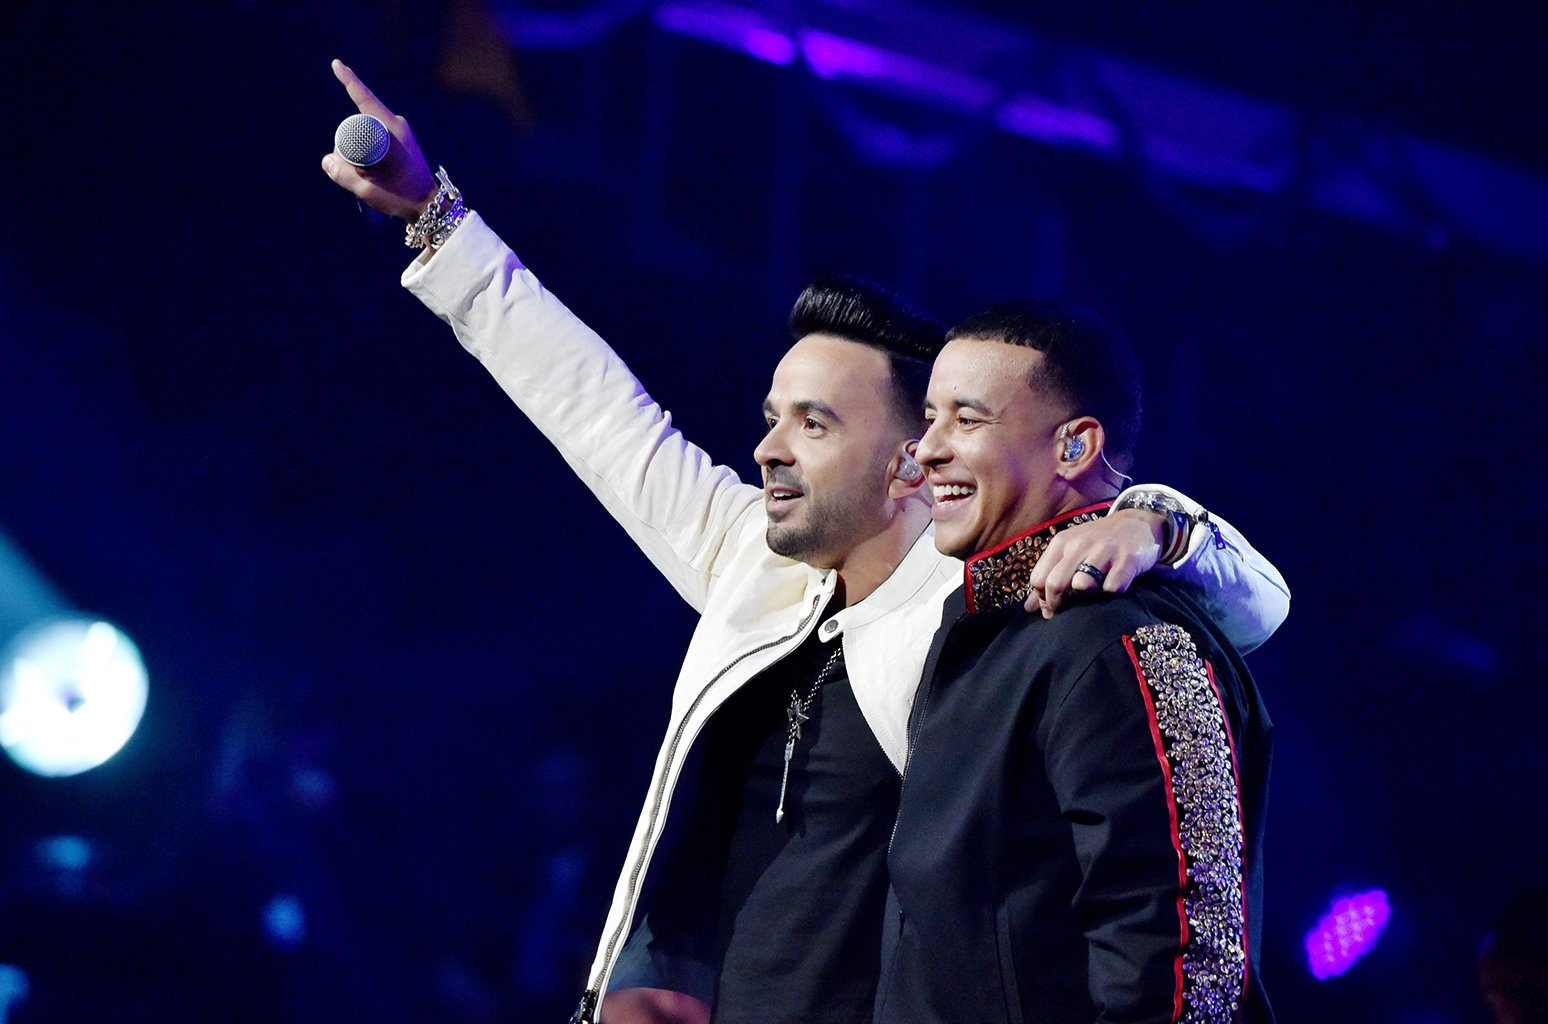 Big things! #Despacito Is First Spanish-Language Song to Reach a Billion Streams on @Spotify https://t.co/Jqwl4NhxnQ https://t.co/bwjudZgi8v